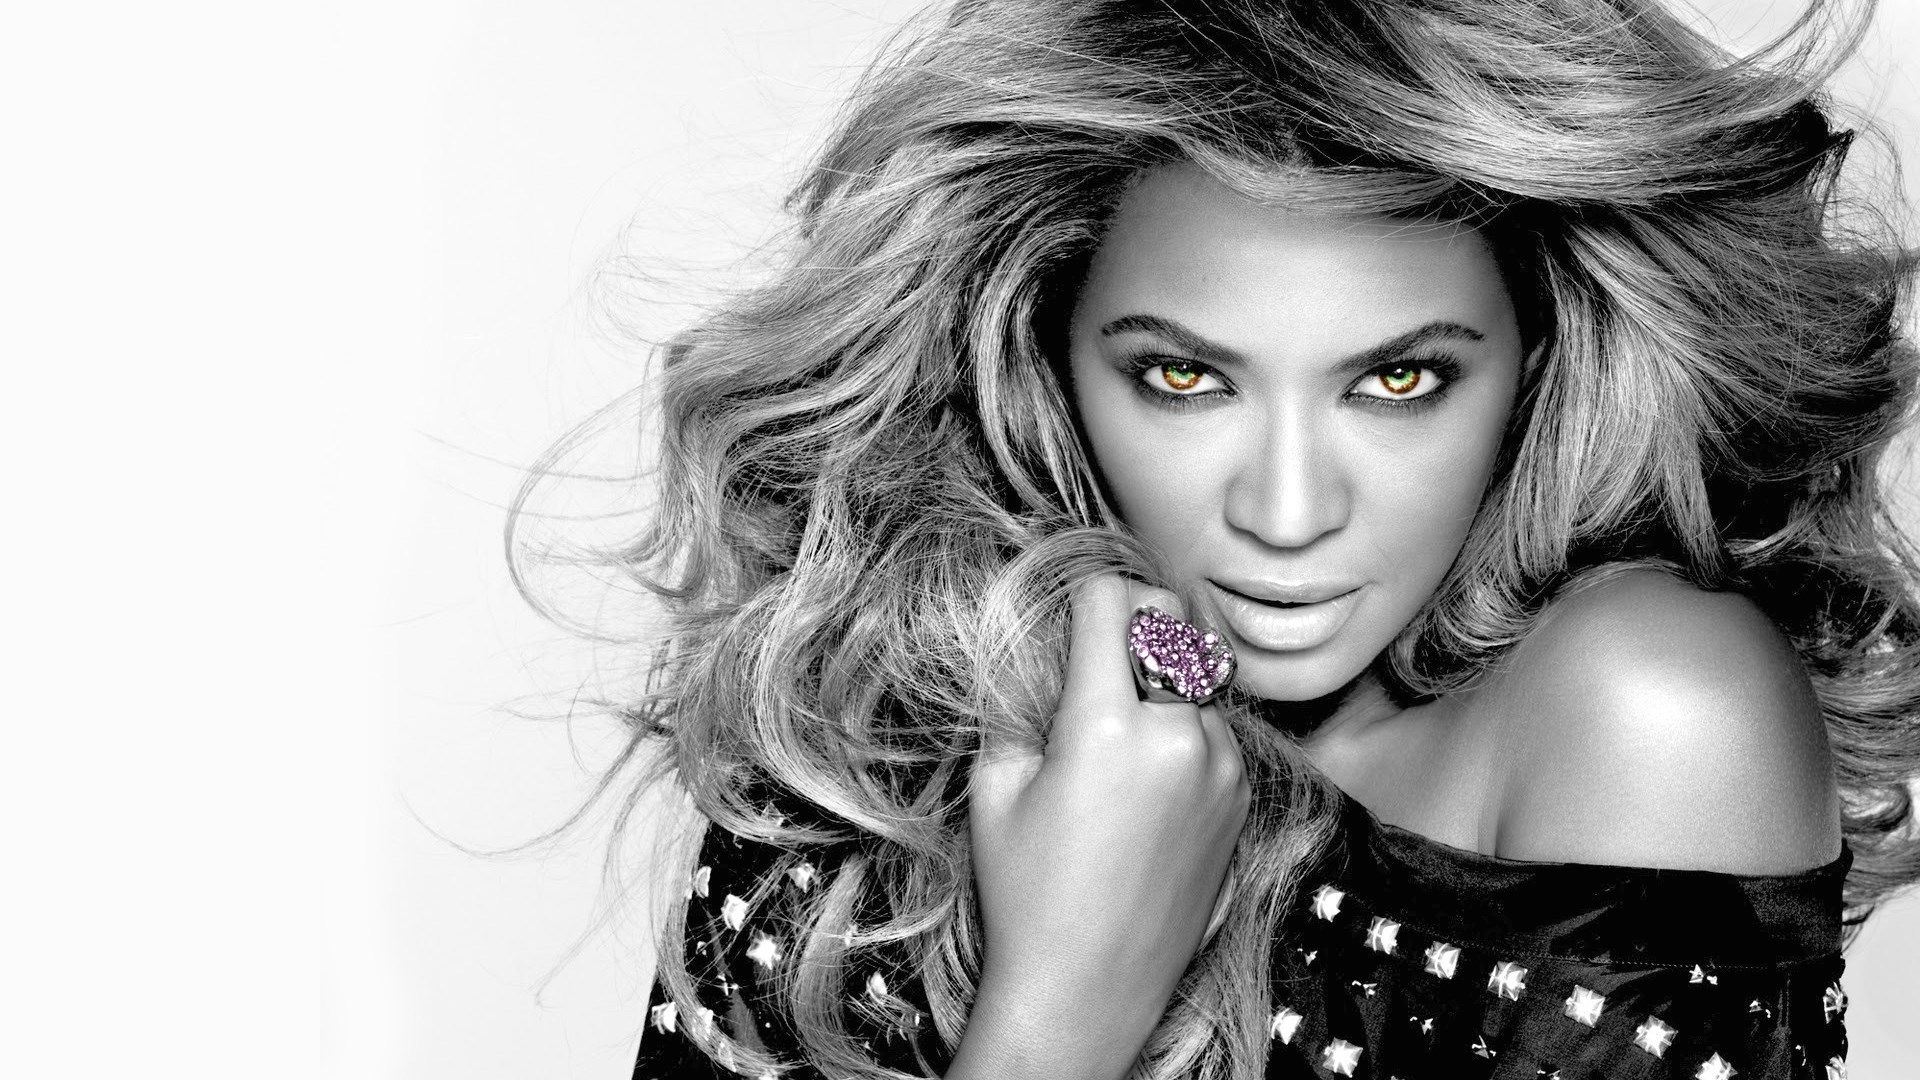 desktop beyonce hd wallpapers images free Beyonce